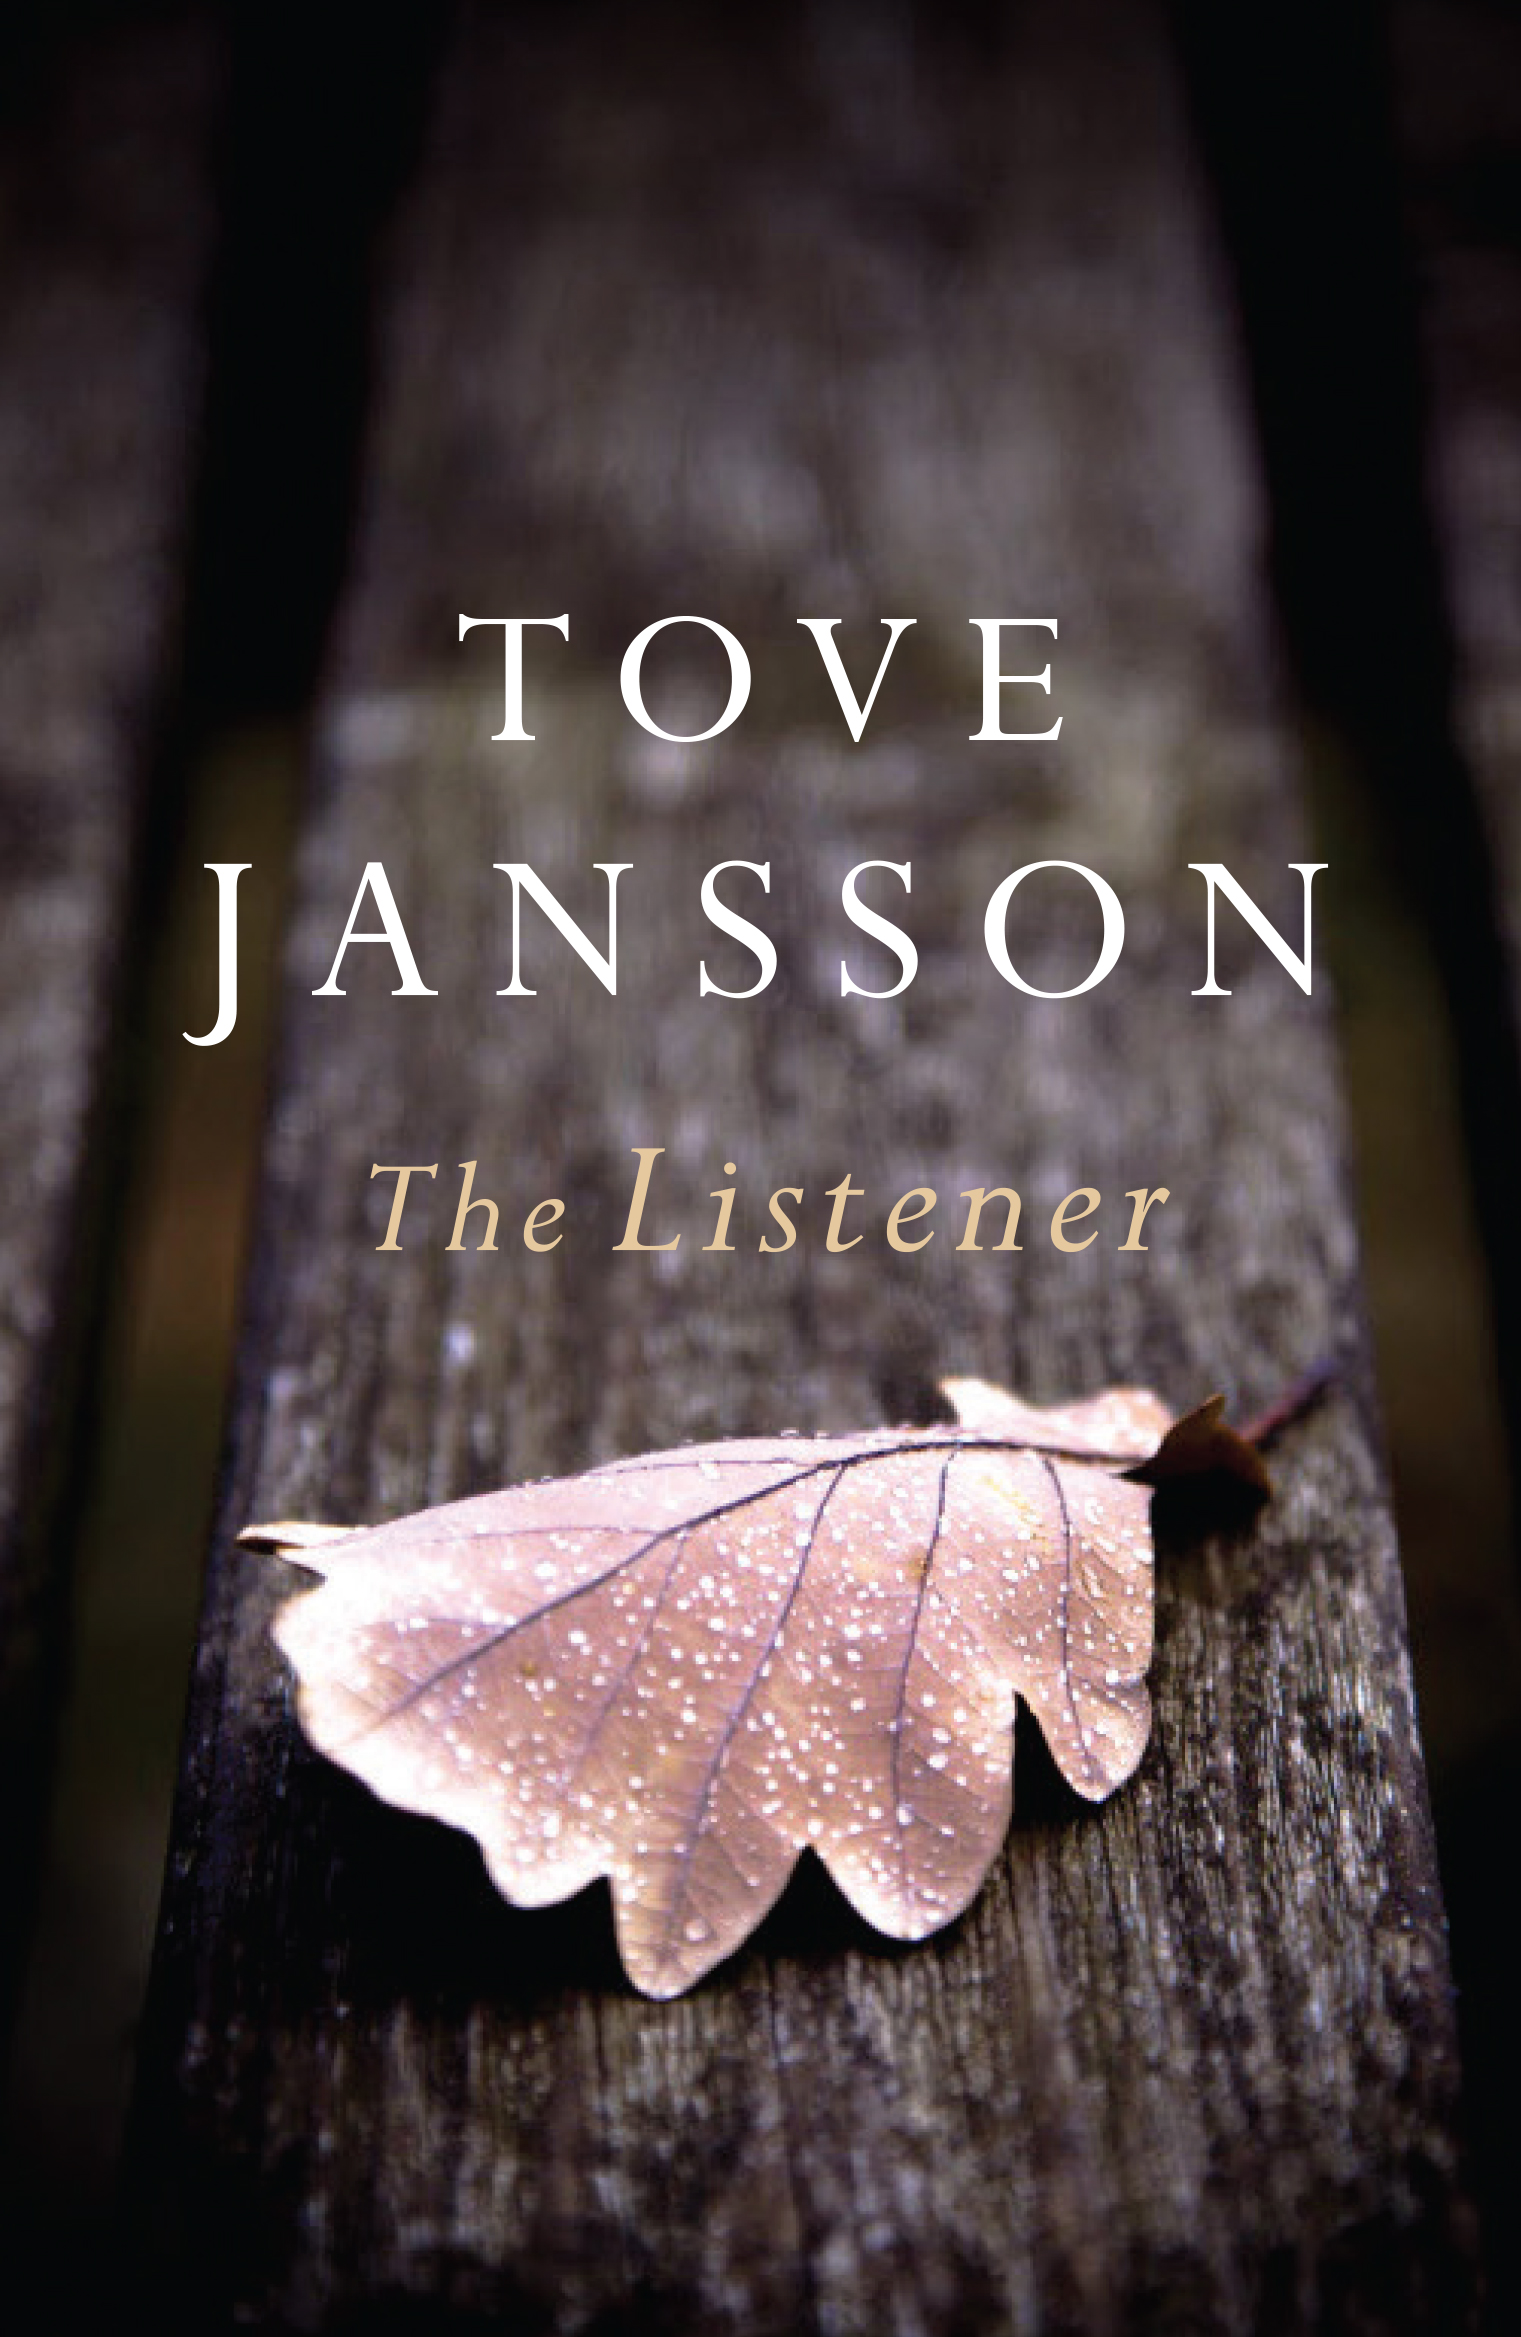 Tove-Jansson-The-Listener-Sort-of-Books.jpg